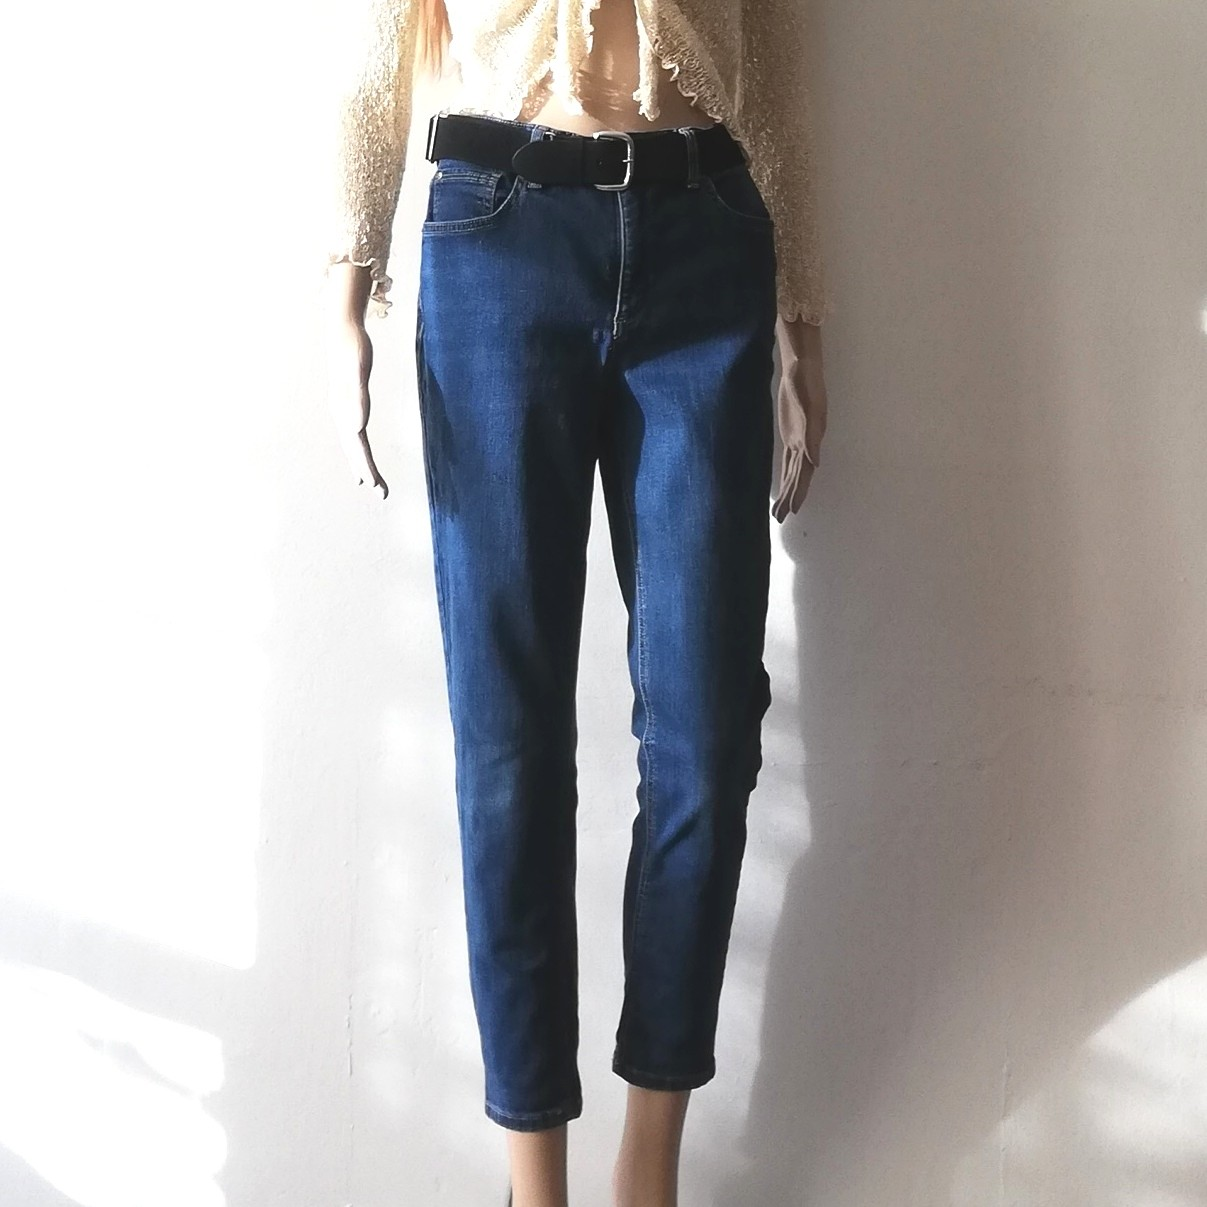 Jones New York Soho Ankle Jeans Soft Stretch Denim Depop